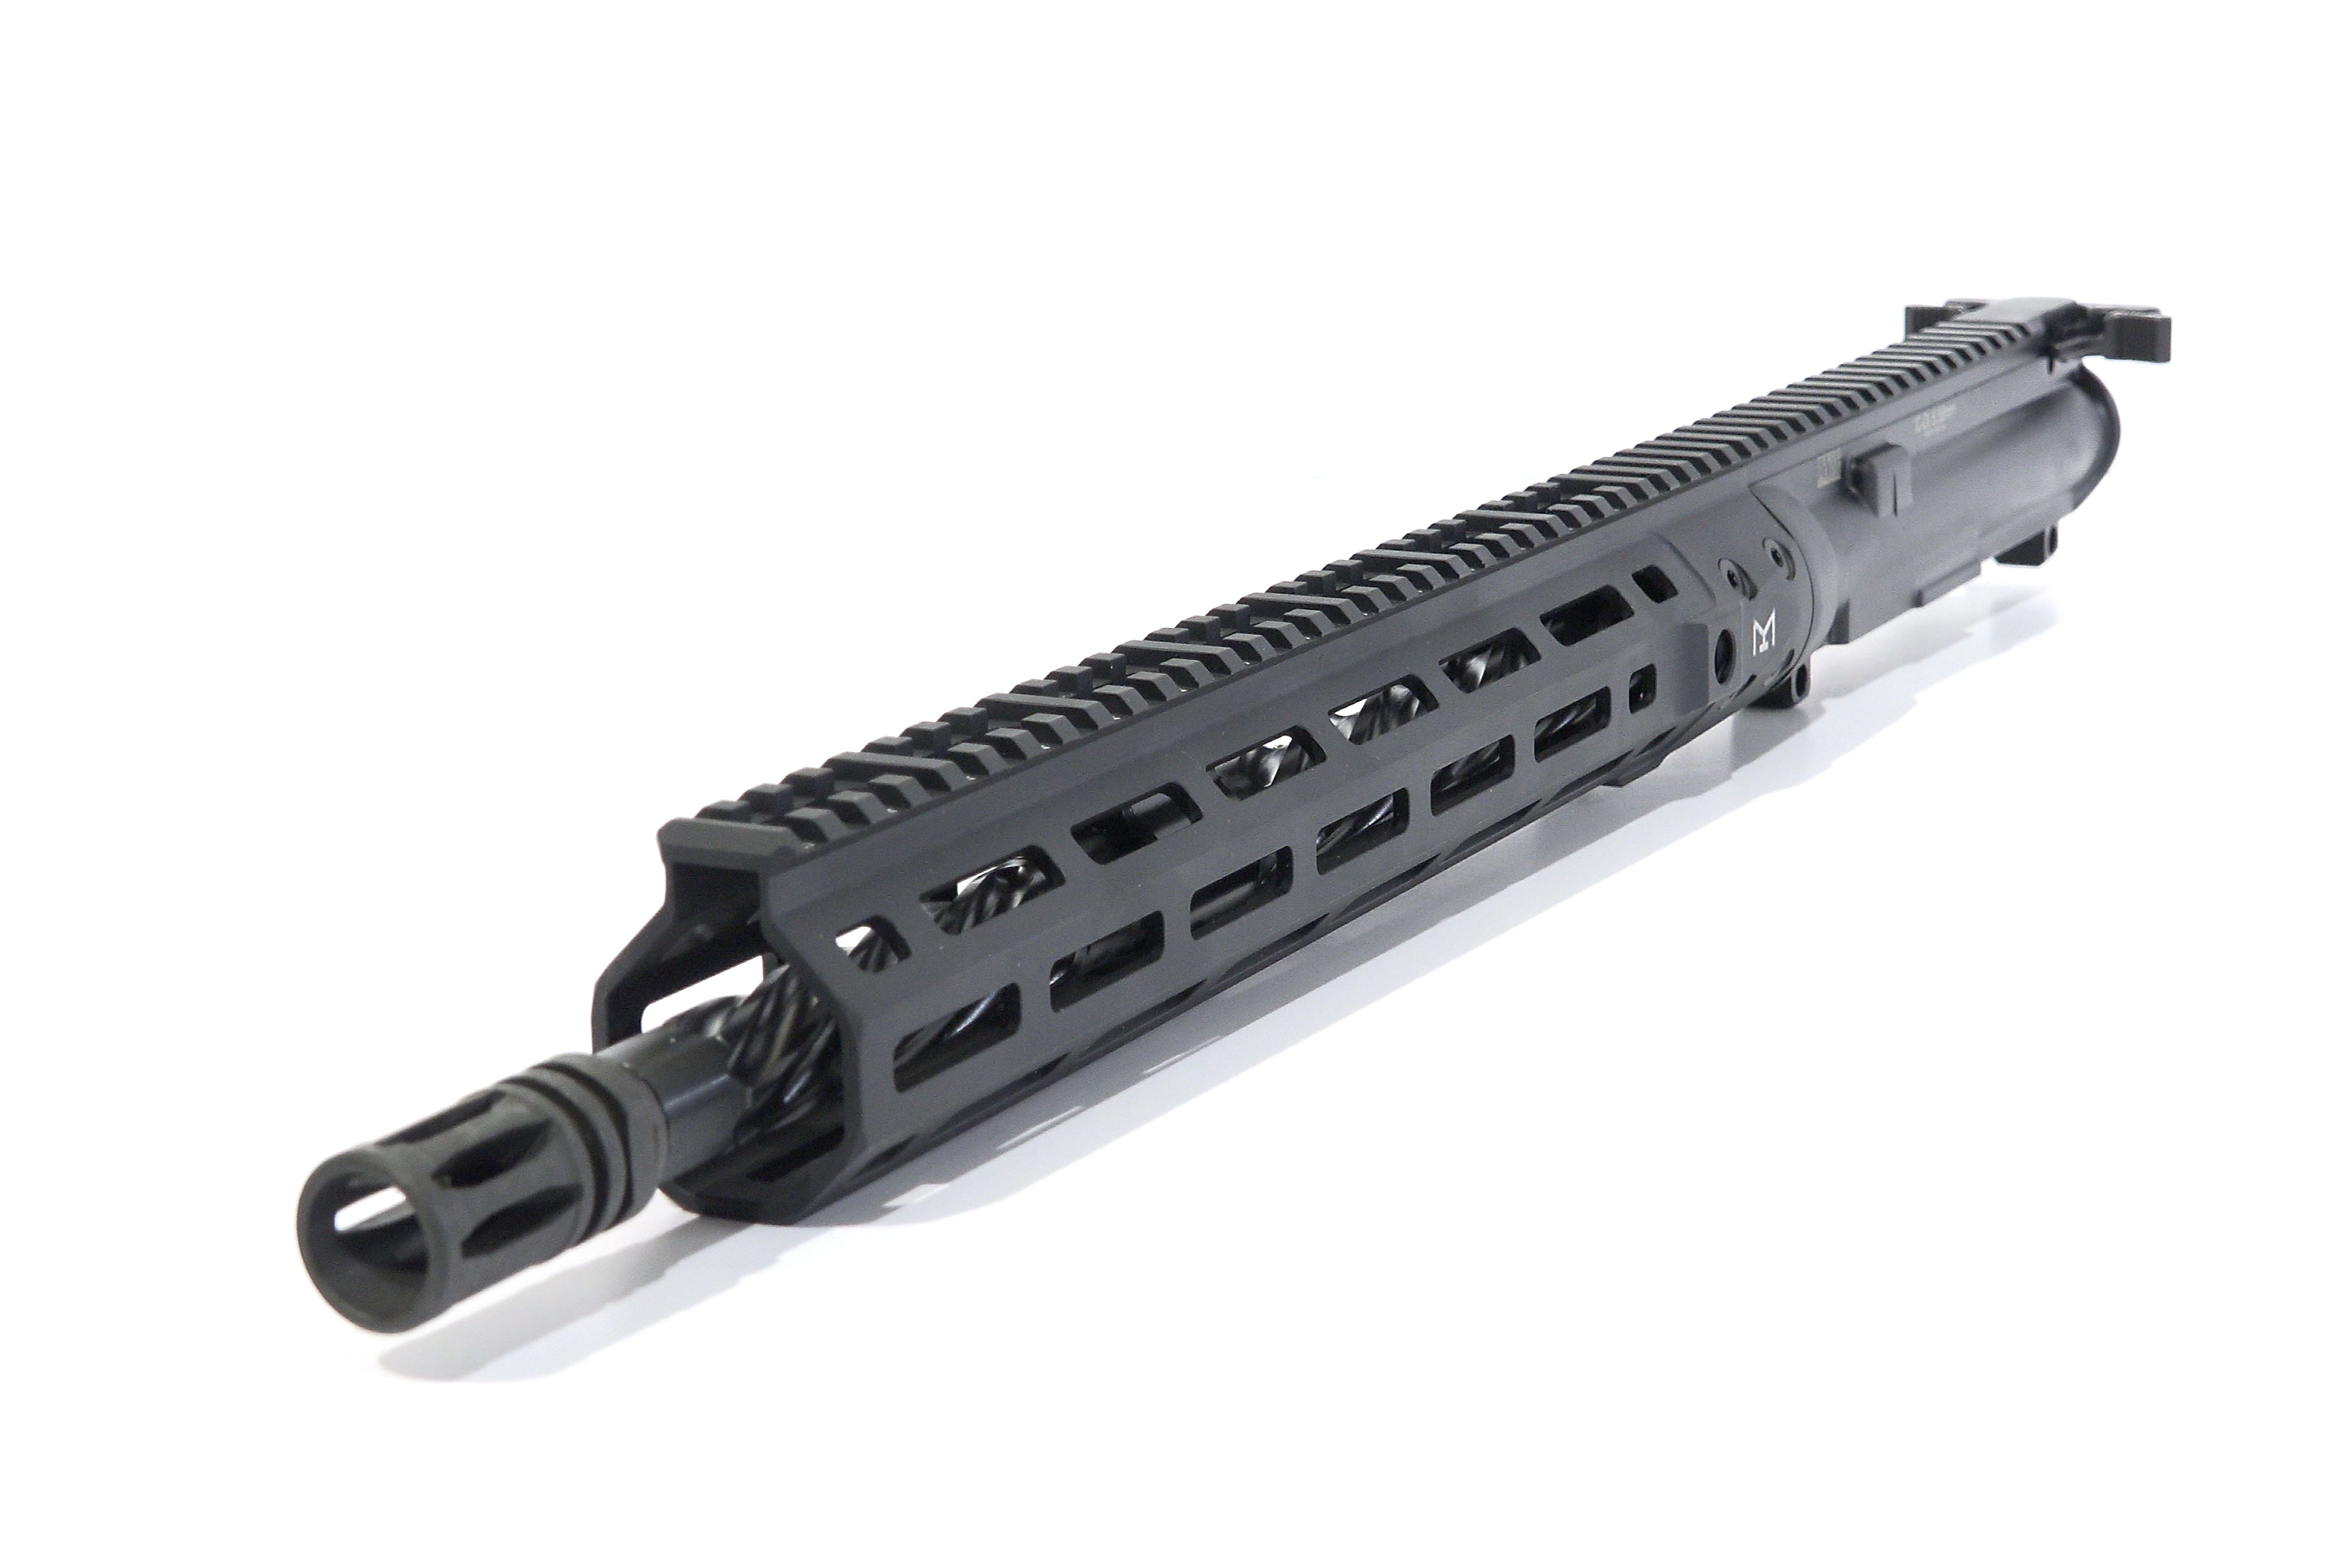 IC-DI MLX/S Extended Upper Receiver